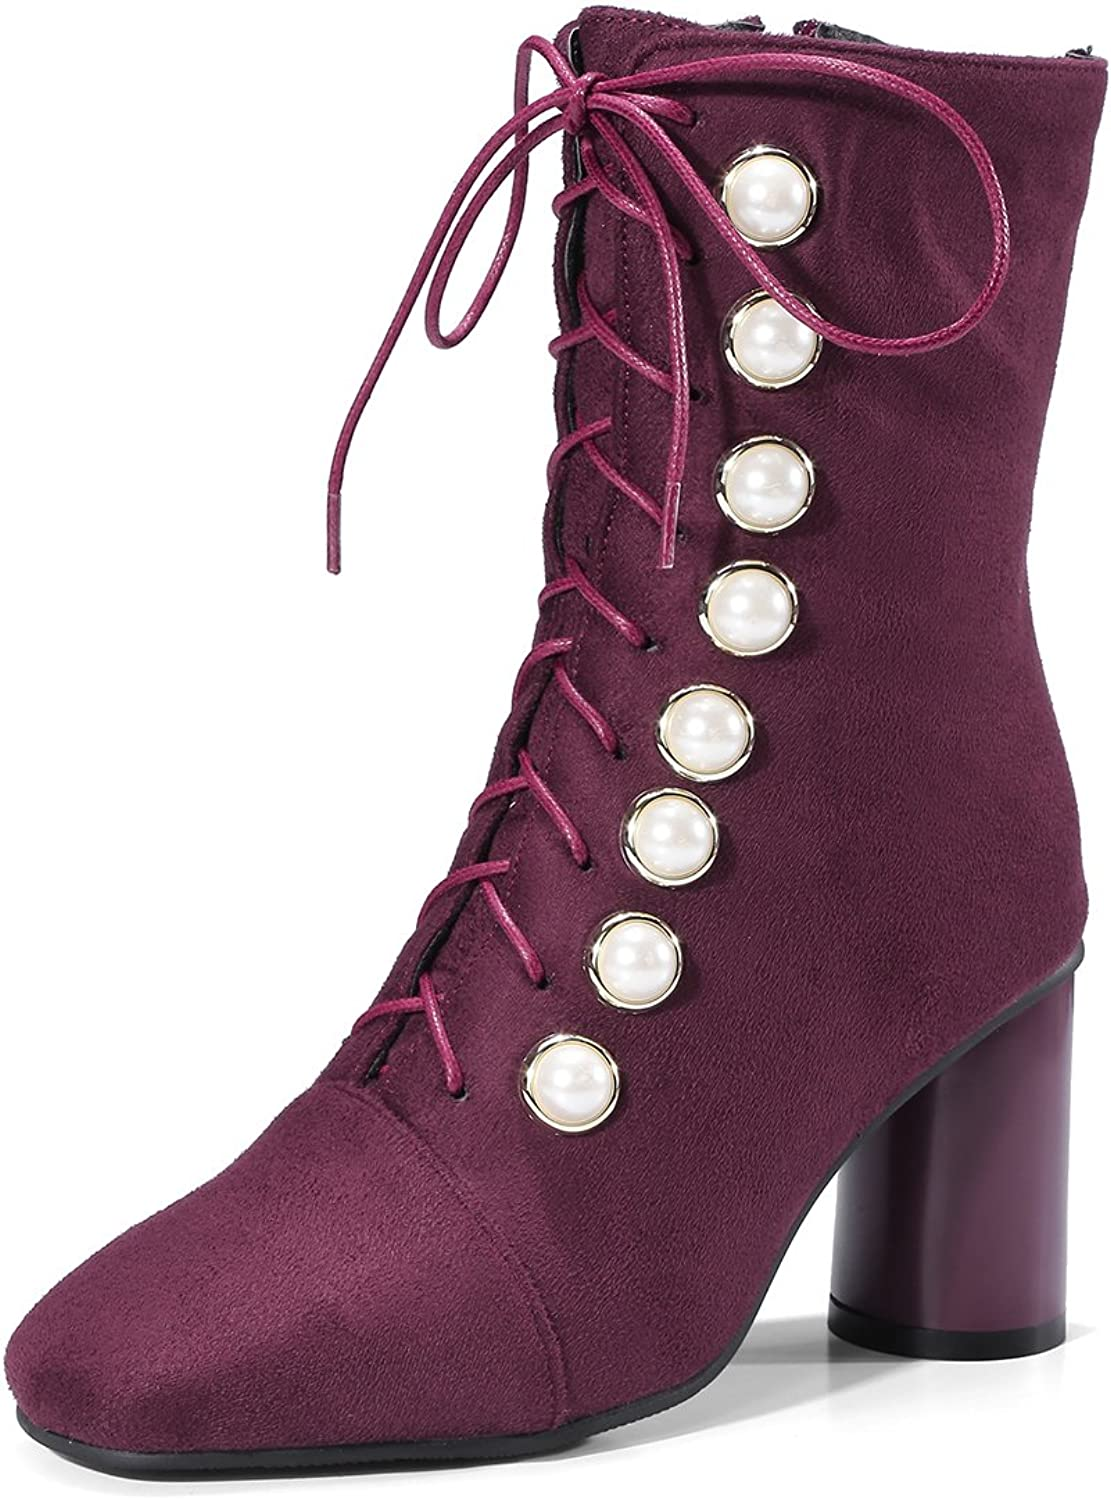 NIQI Women Faux Suede Thick High Heel Square Toe Lace up Button Ankle Boots